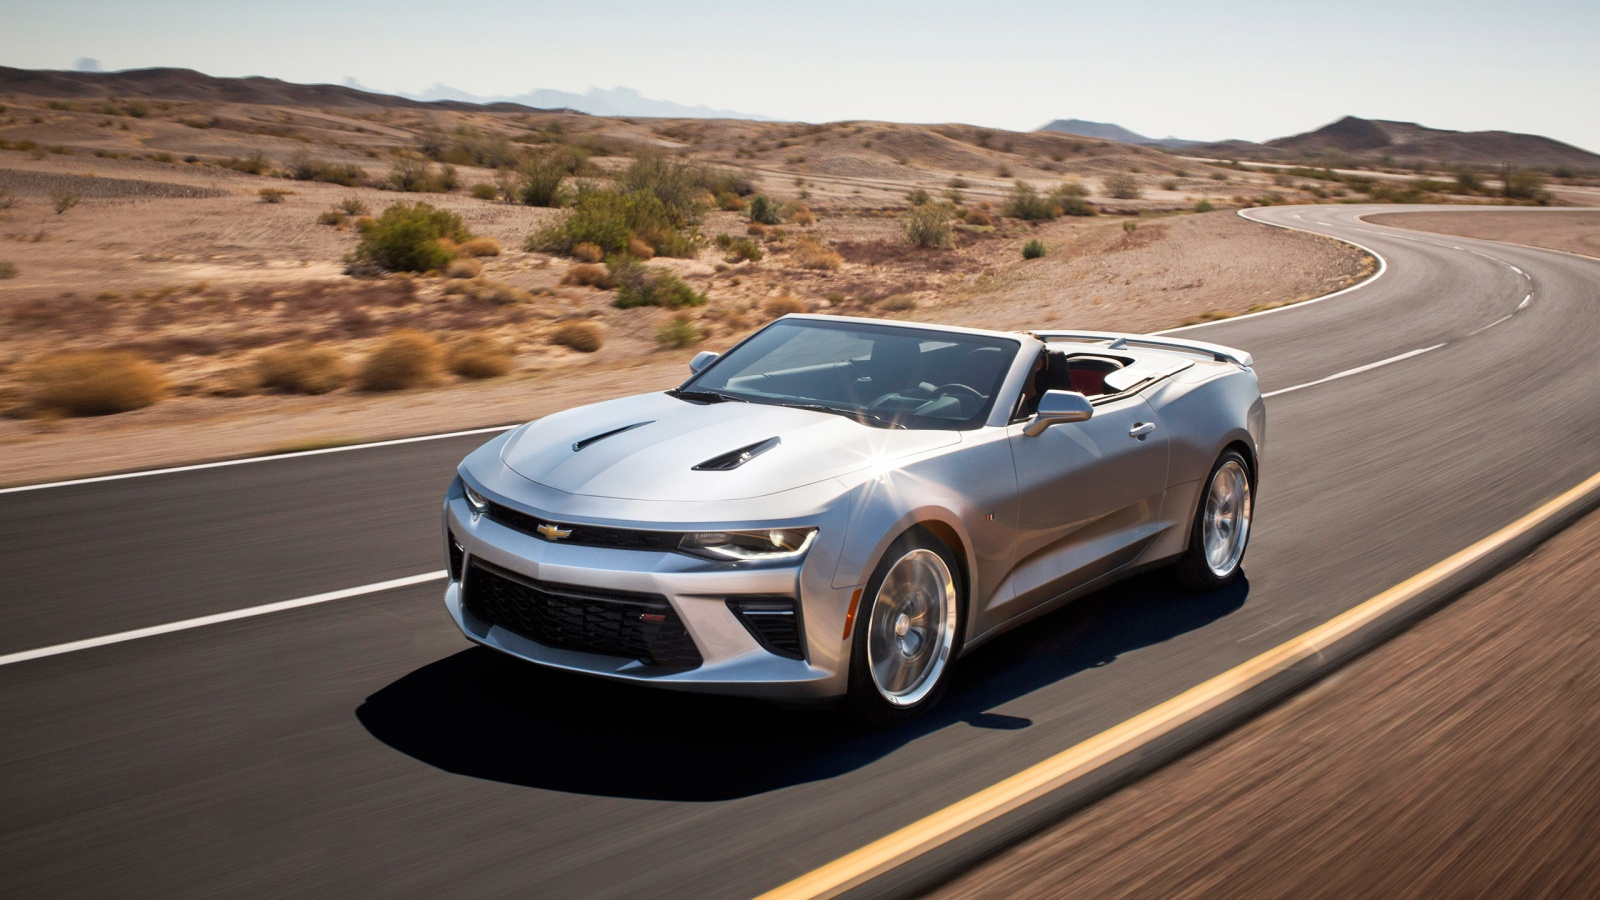 2016 Chevrolet Camaro Convertible Wallpaper HD Car Wallpapers 1600x900